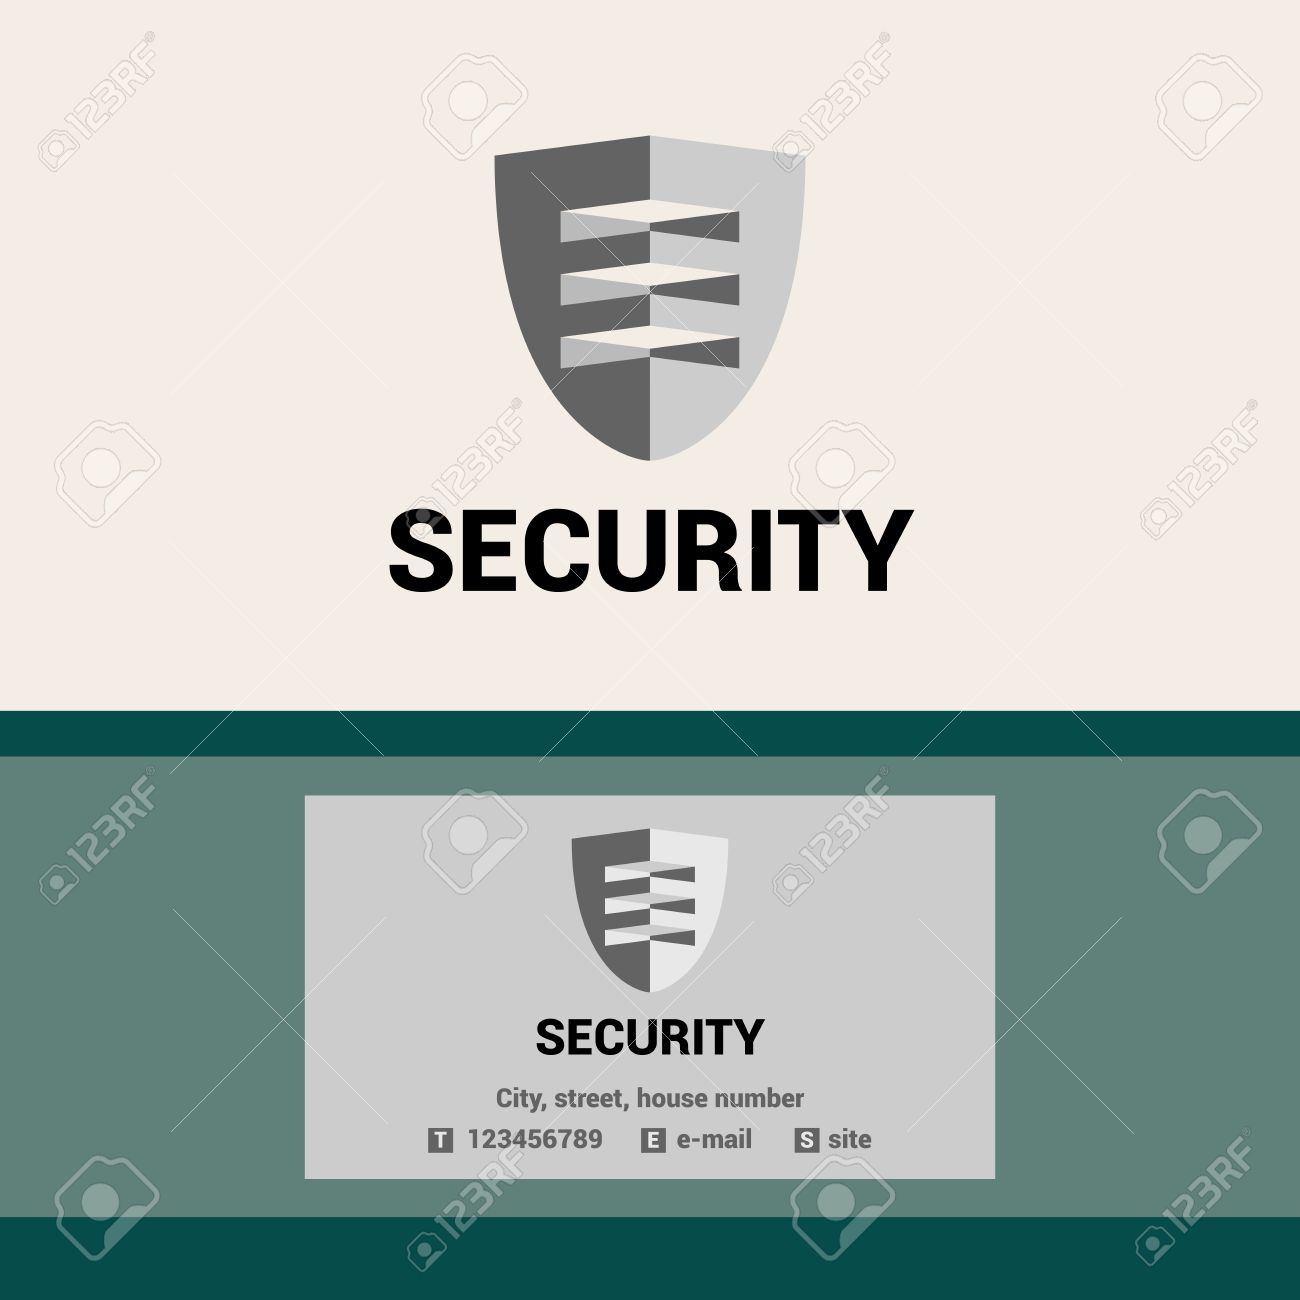 Editable template logo and business card for security organization editable template logo and business card for security organization the shield and visor stock colourmoves